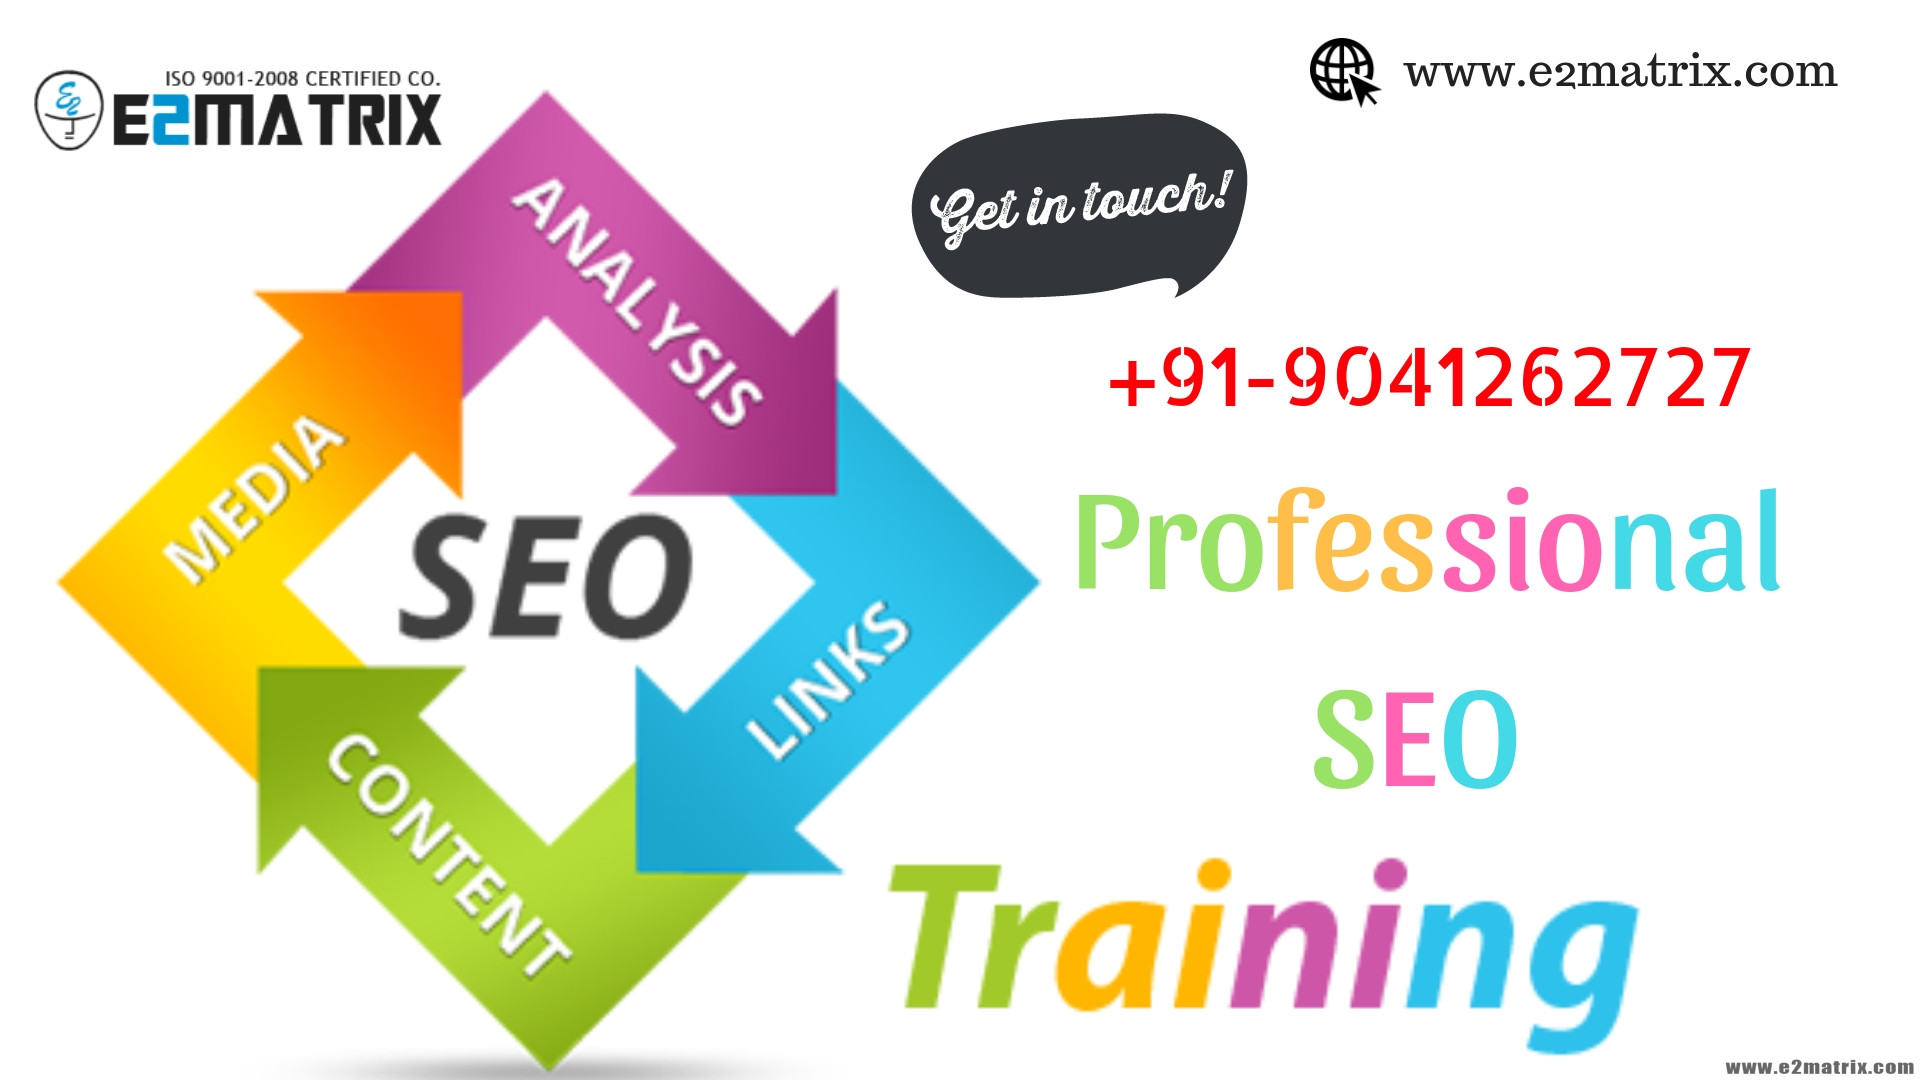 Best SEO Training in Jalandhar, Amritsar and Ludhiana-Punjab